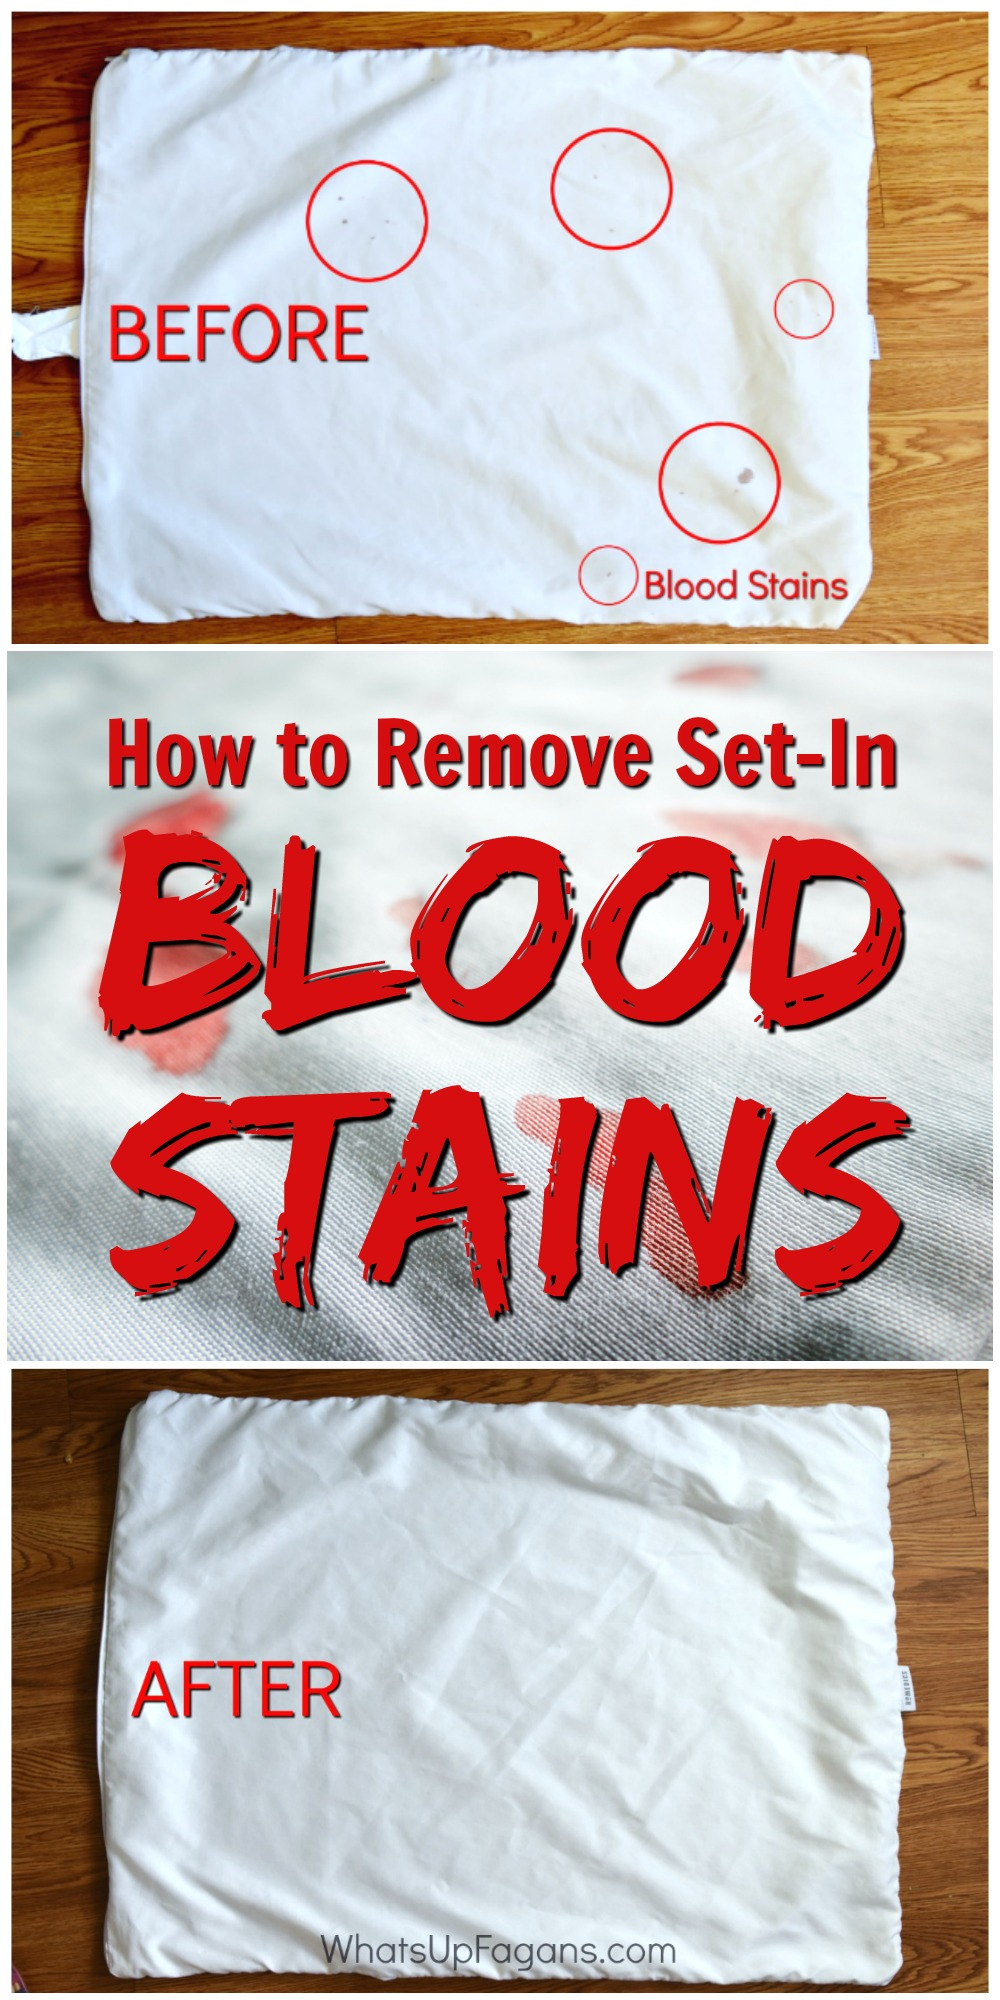 How To Get Urine Smell Out Of Clothes How To Remove Dried Set In Blood Stains From Clothes